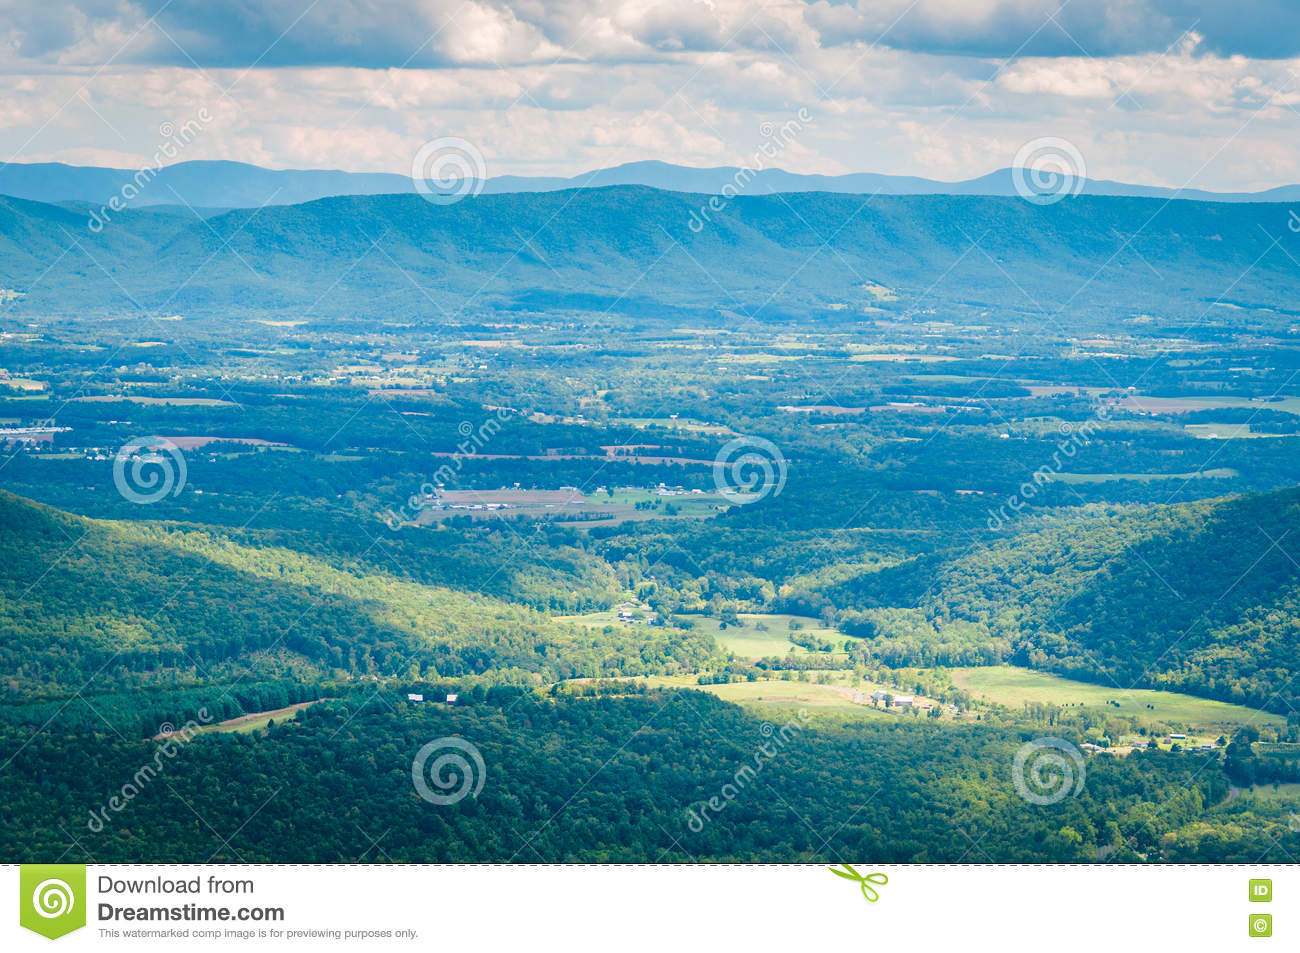 View of the Shenandoah Valley and Appalachian Mountains from the